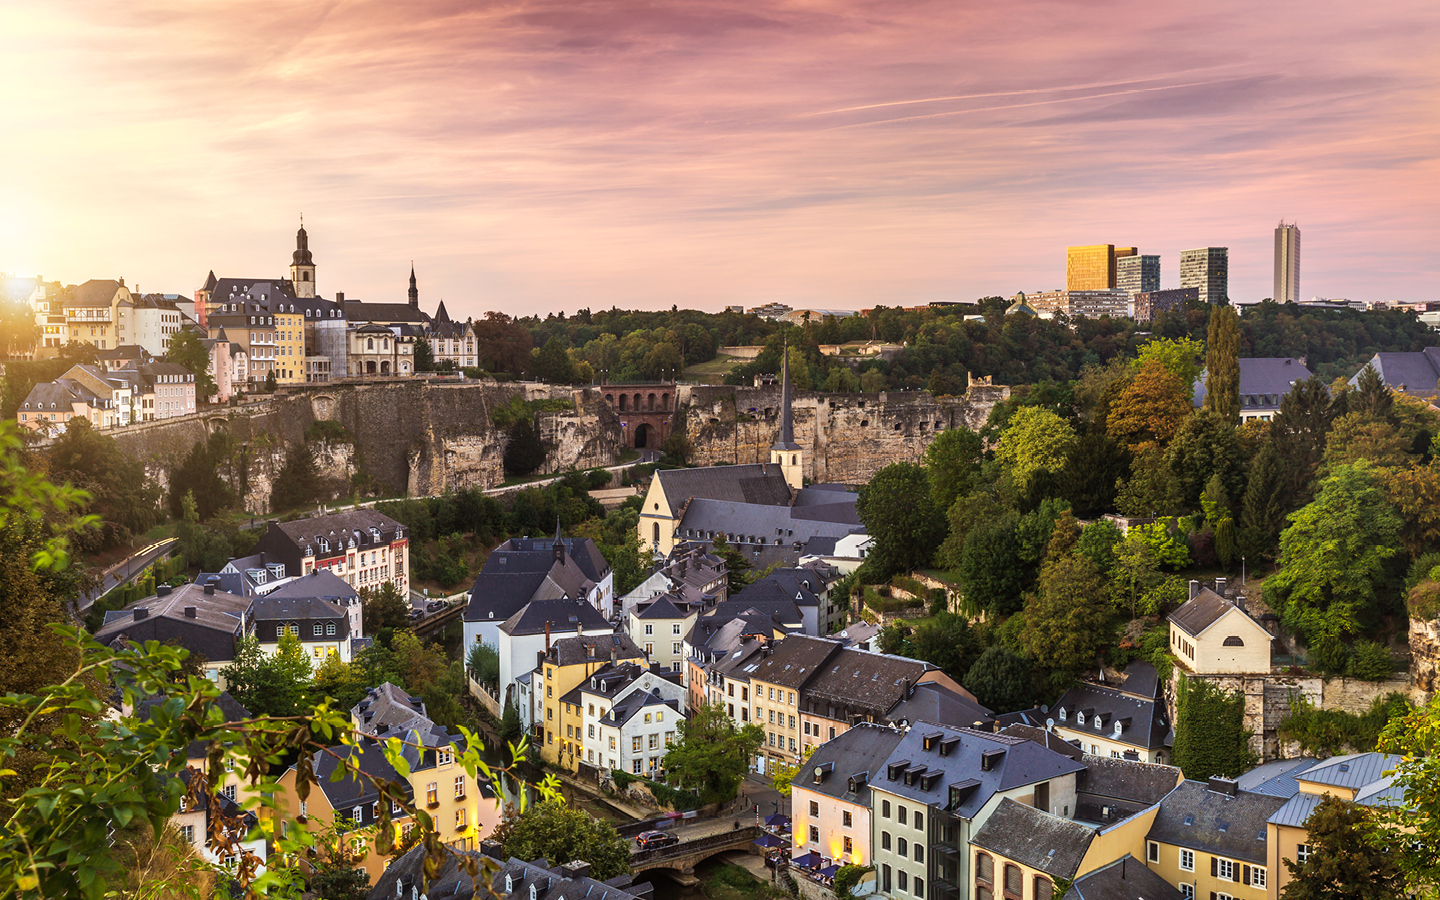 View of houses in Luxembourg